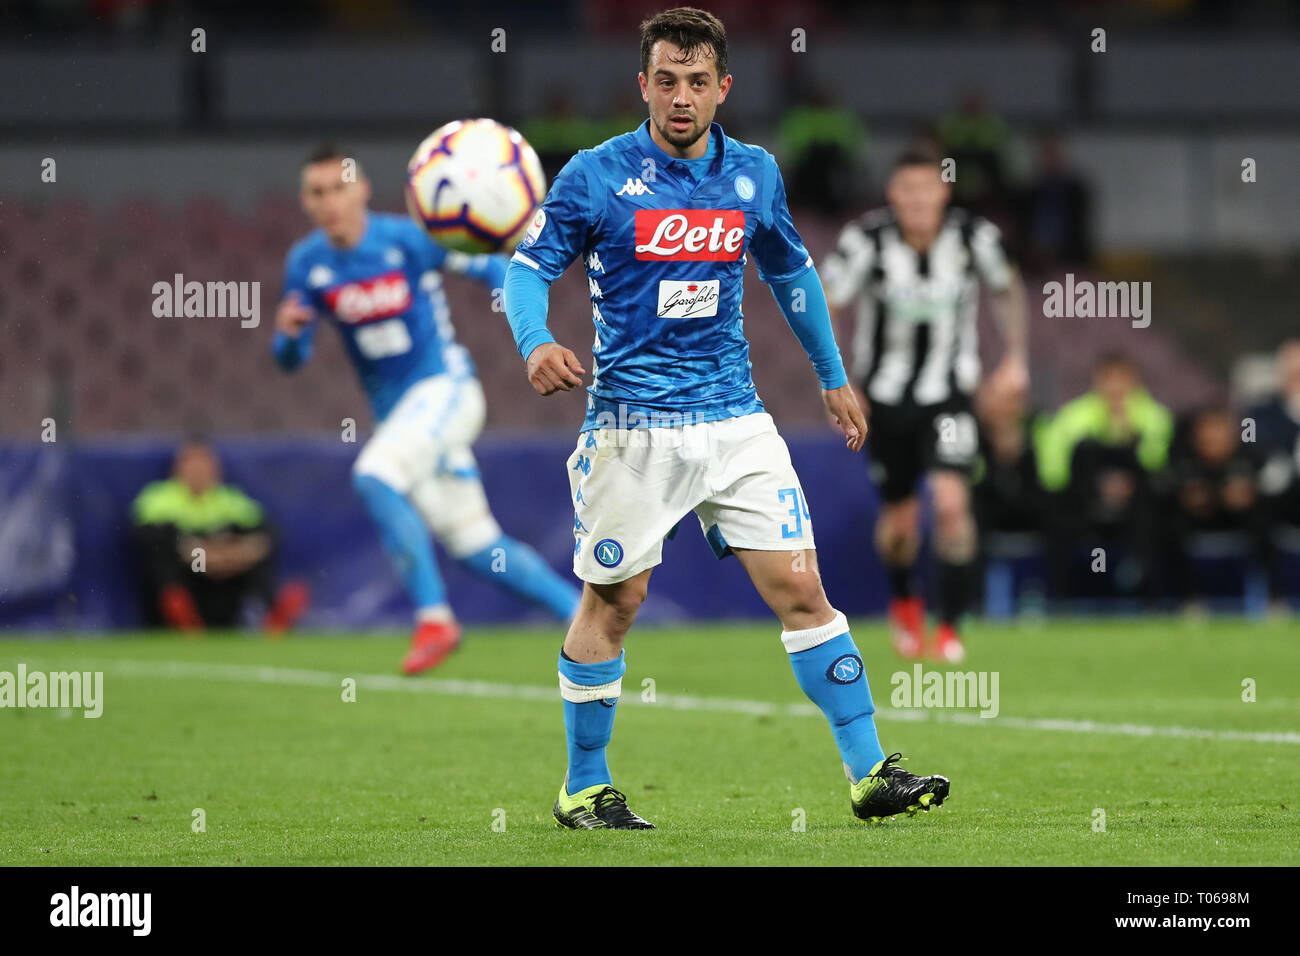 Amin Younes High Resolution Stock Photography and Images - Alamy